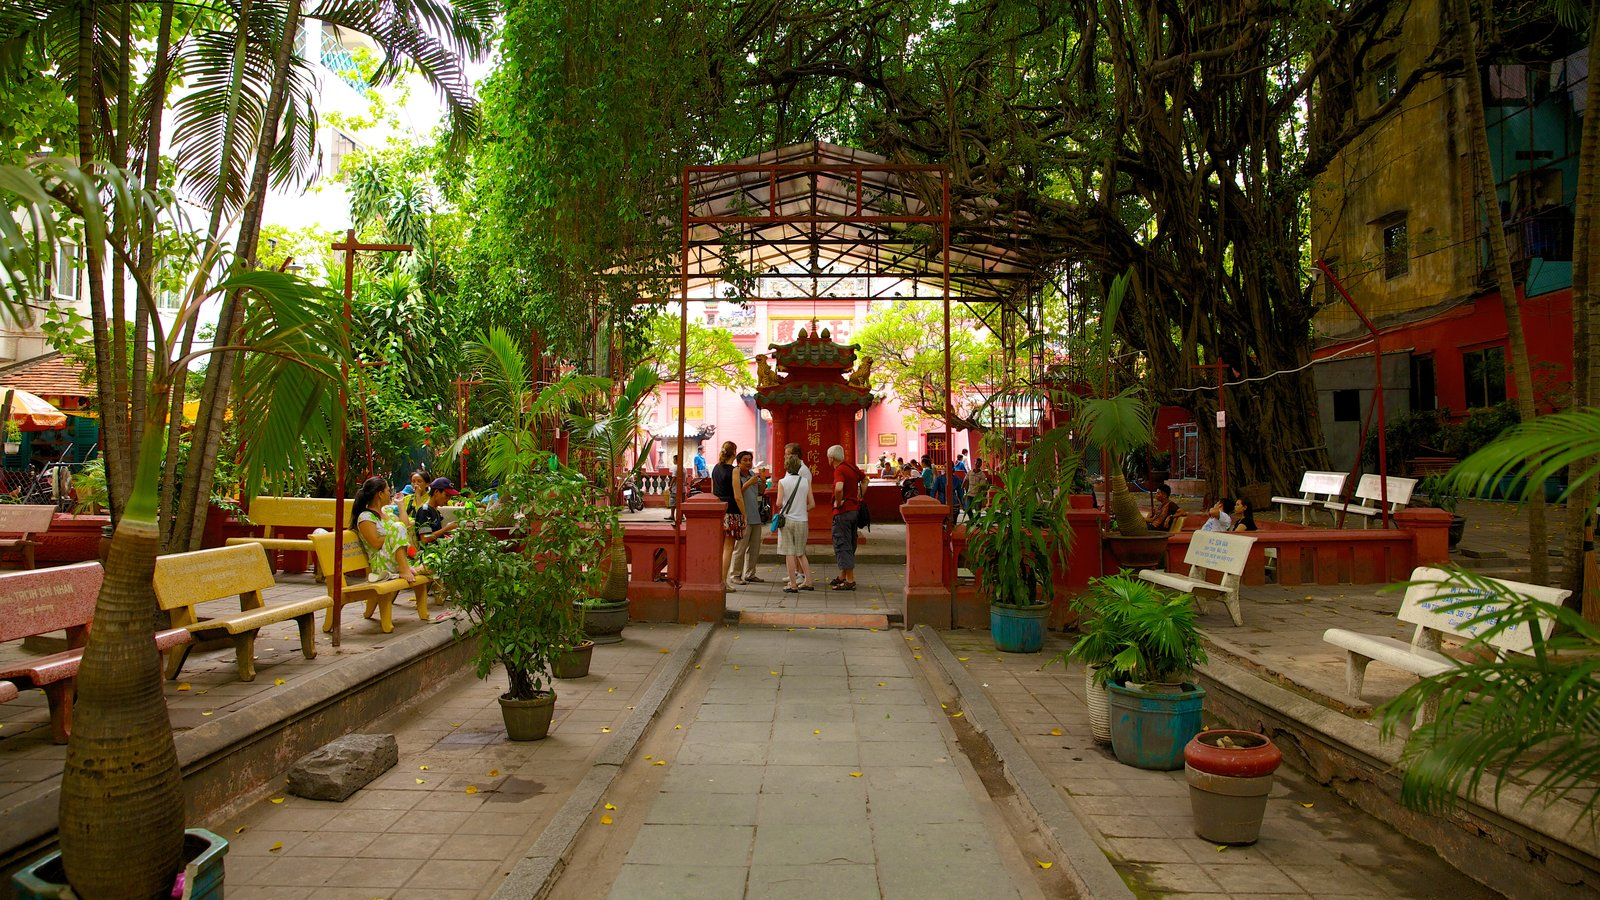 Gardens & Parks Pictures: View Images of Jade Emperor Pagoda